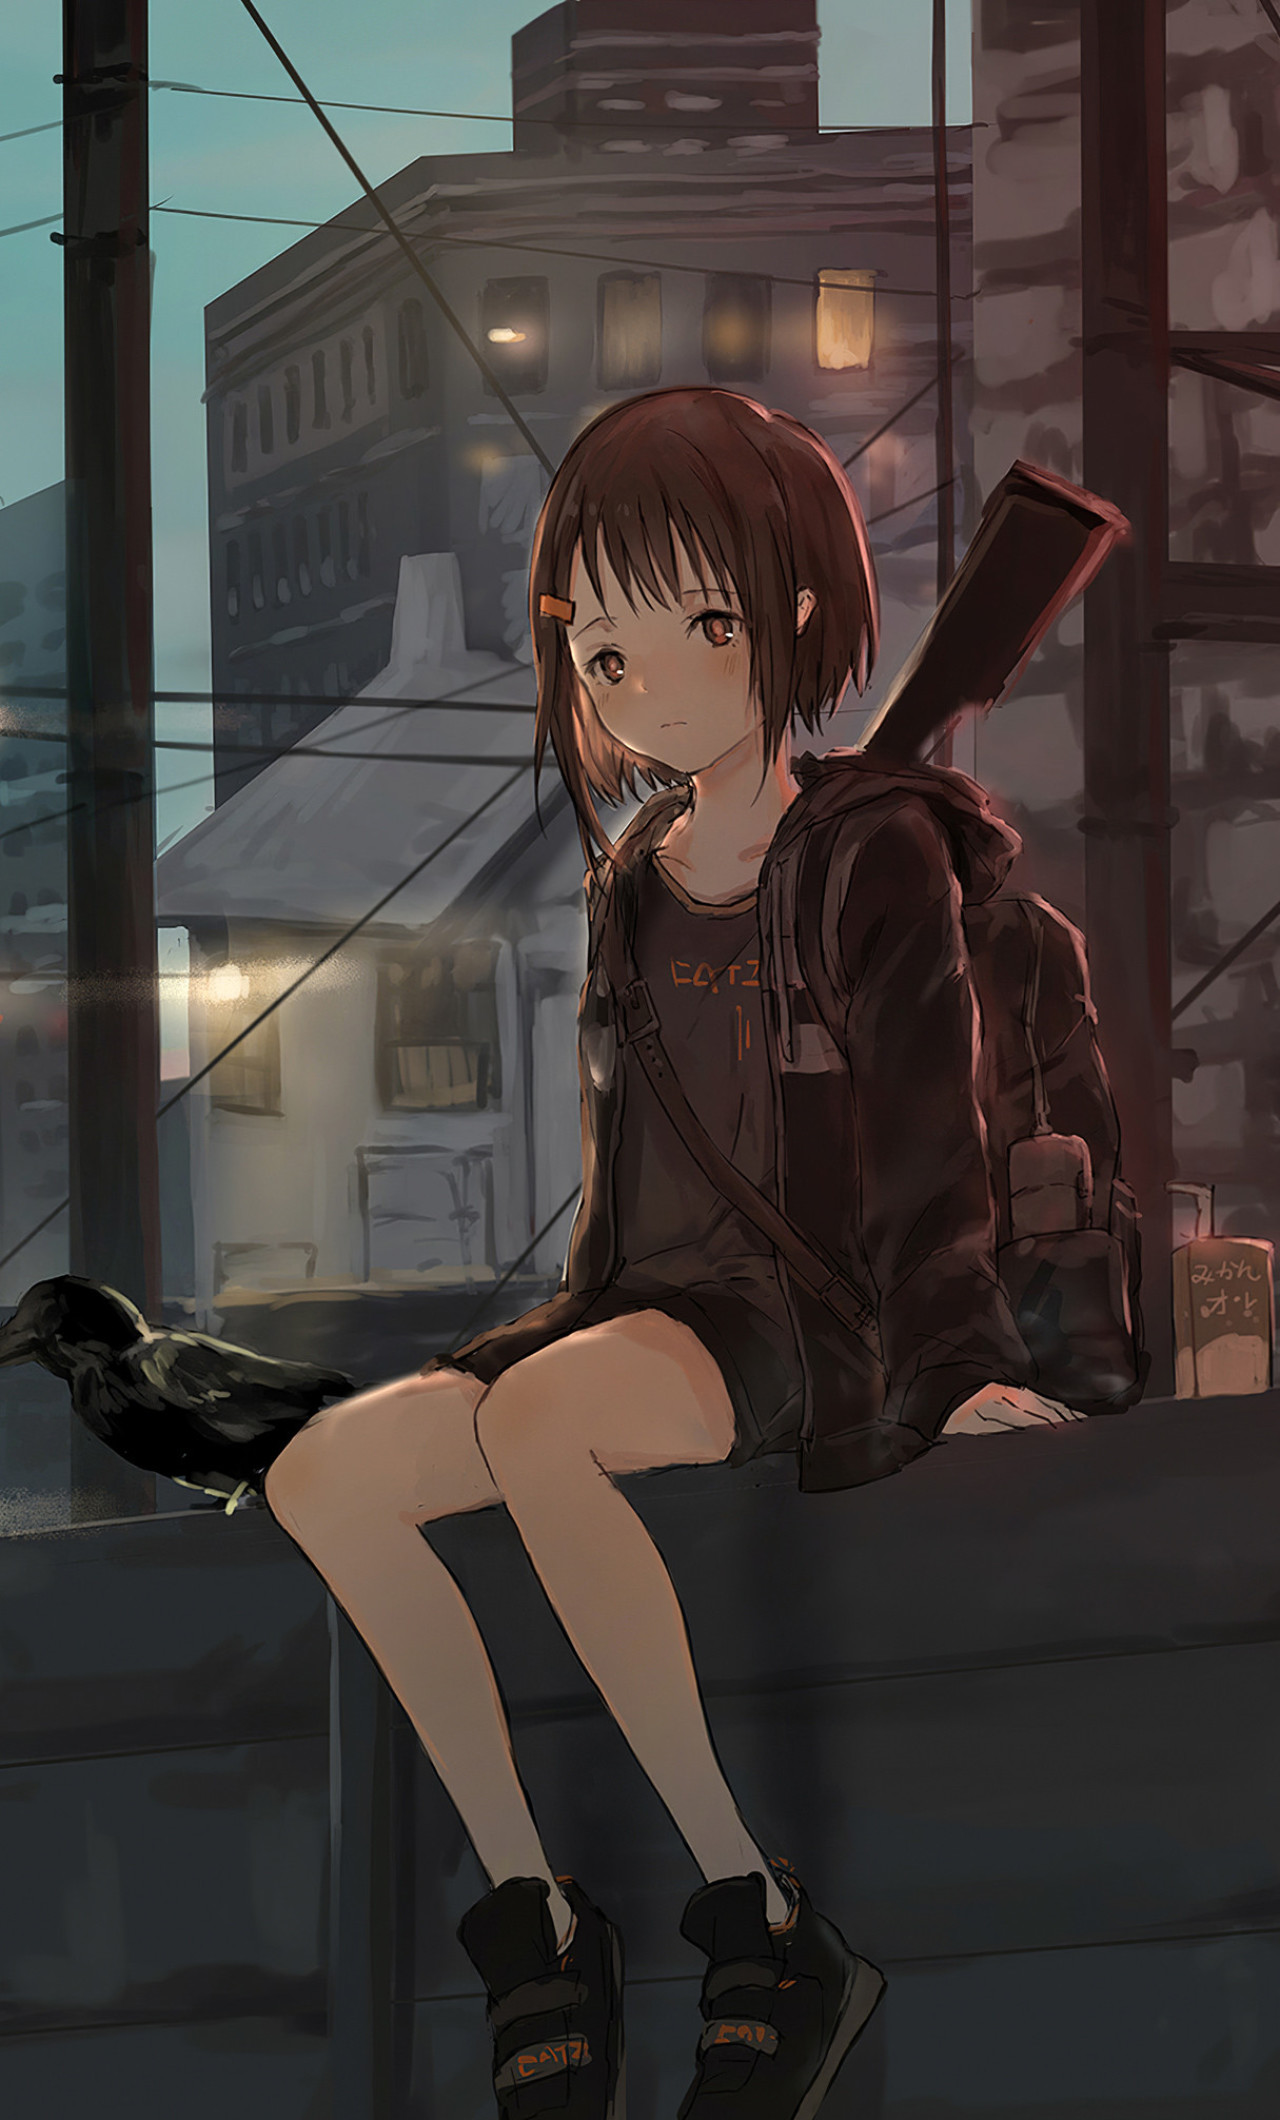 Alone Anime Girl Sad - 1280x2120 ...